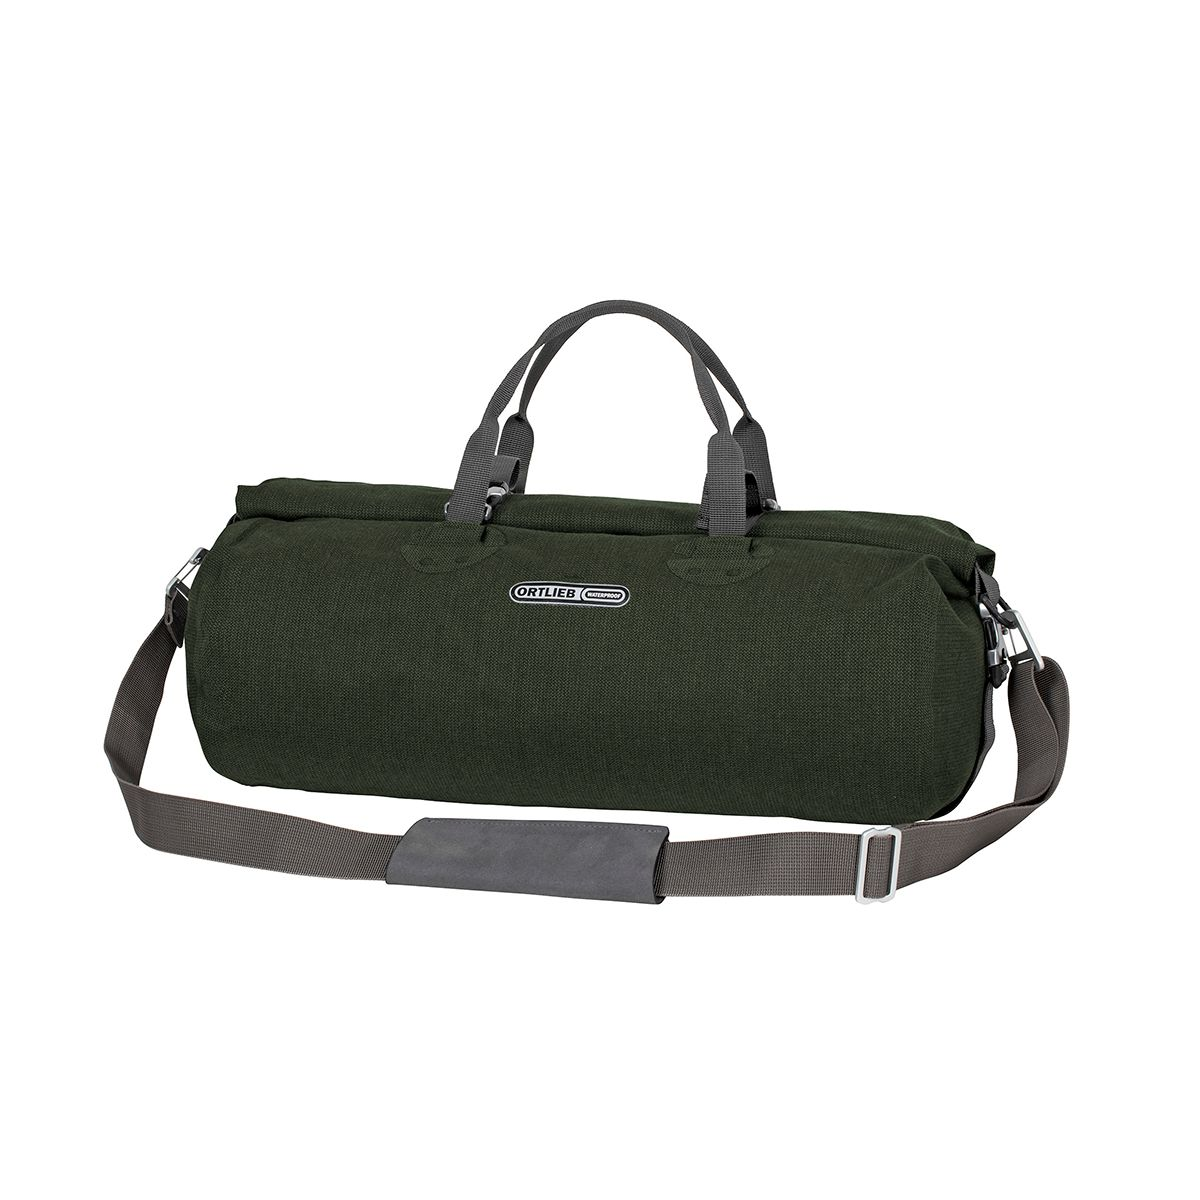 RACK-PACK URBAN 24 Tasche